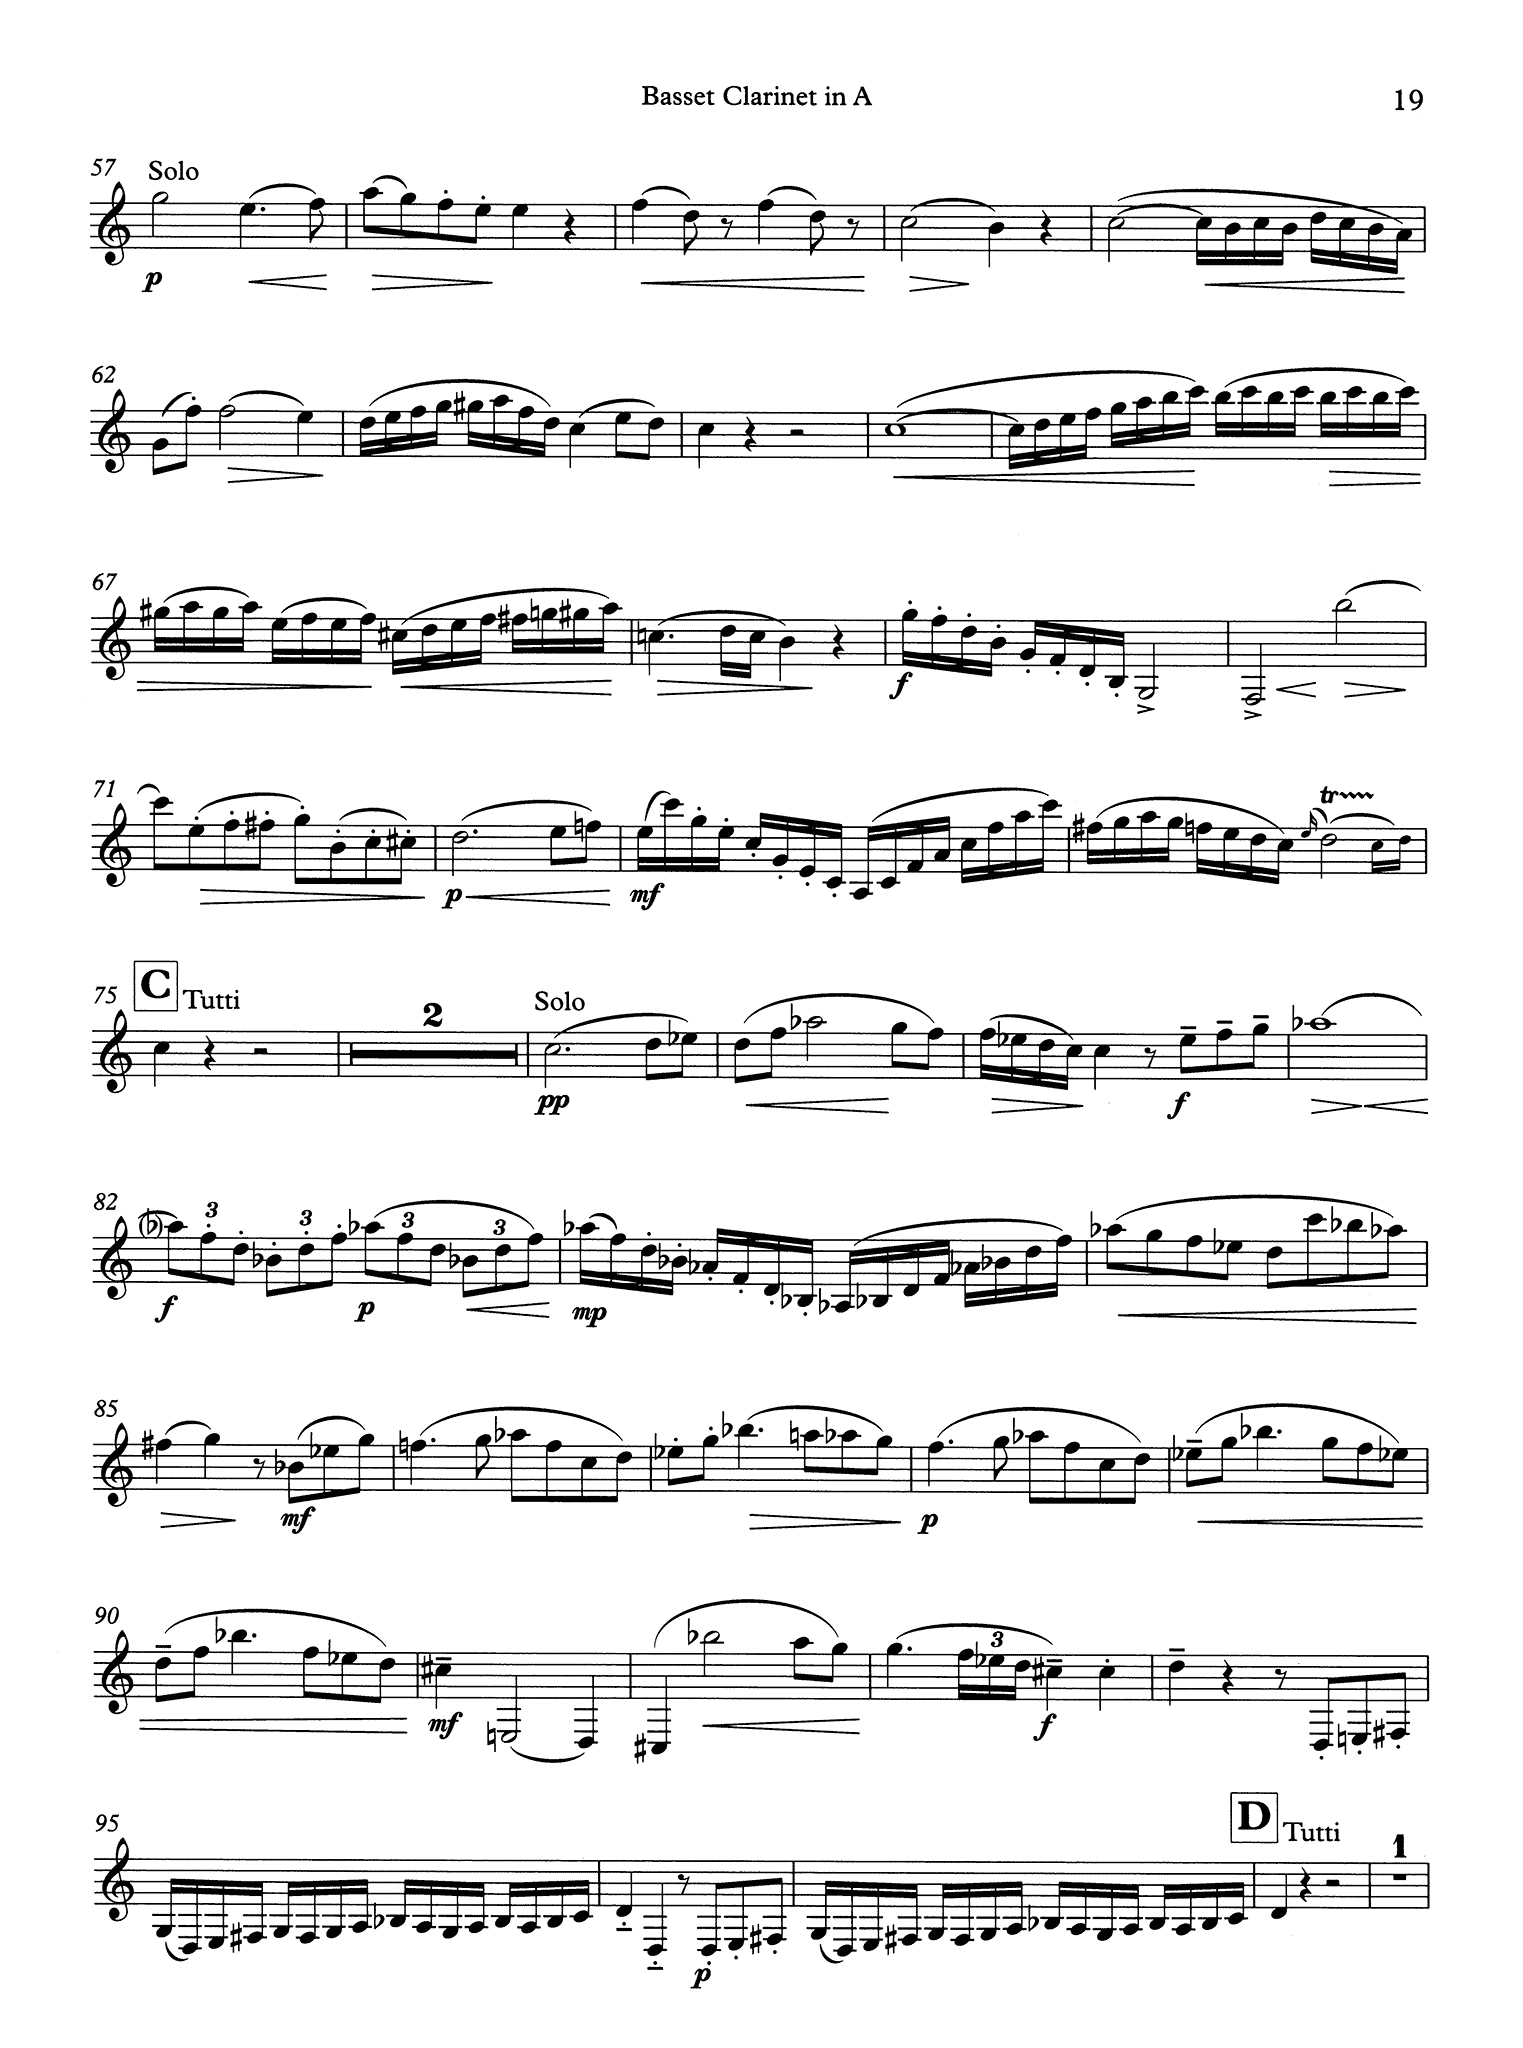 Clarinet Concerto in A Major, K. 622 Basset Clarinet part